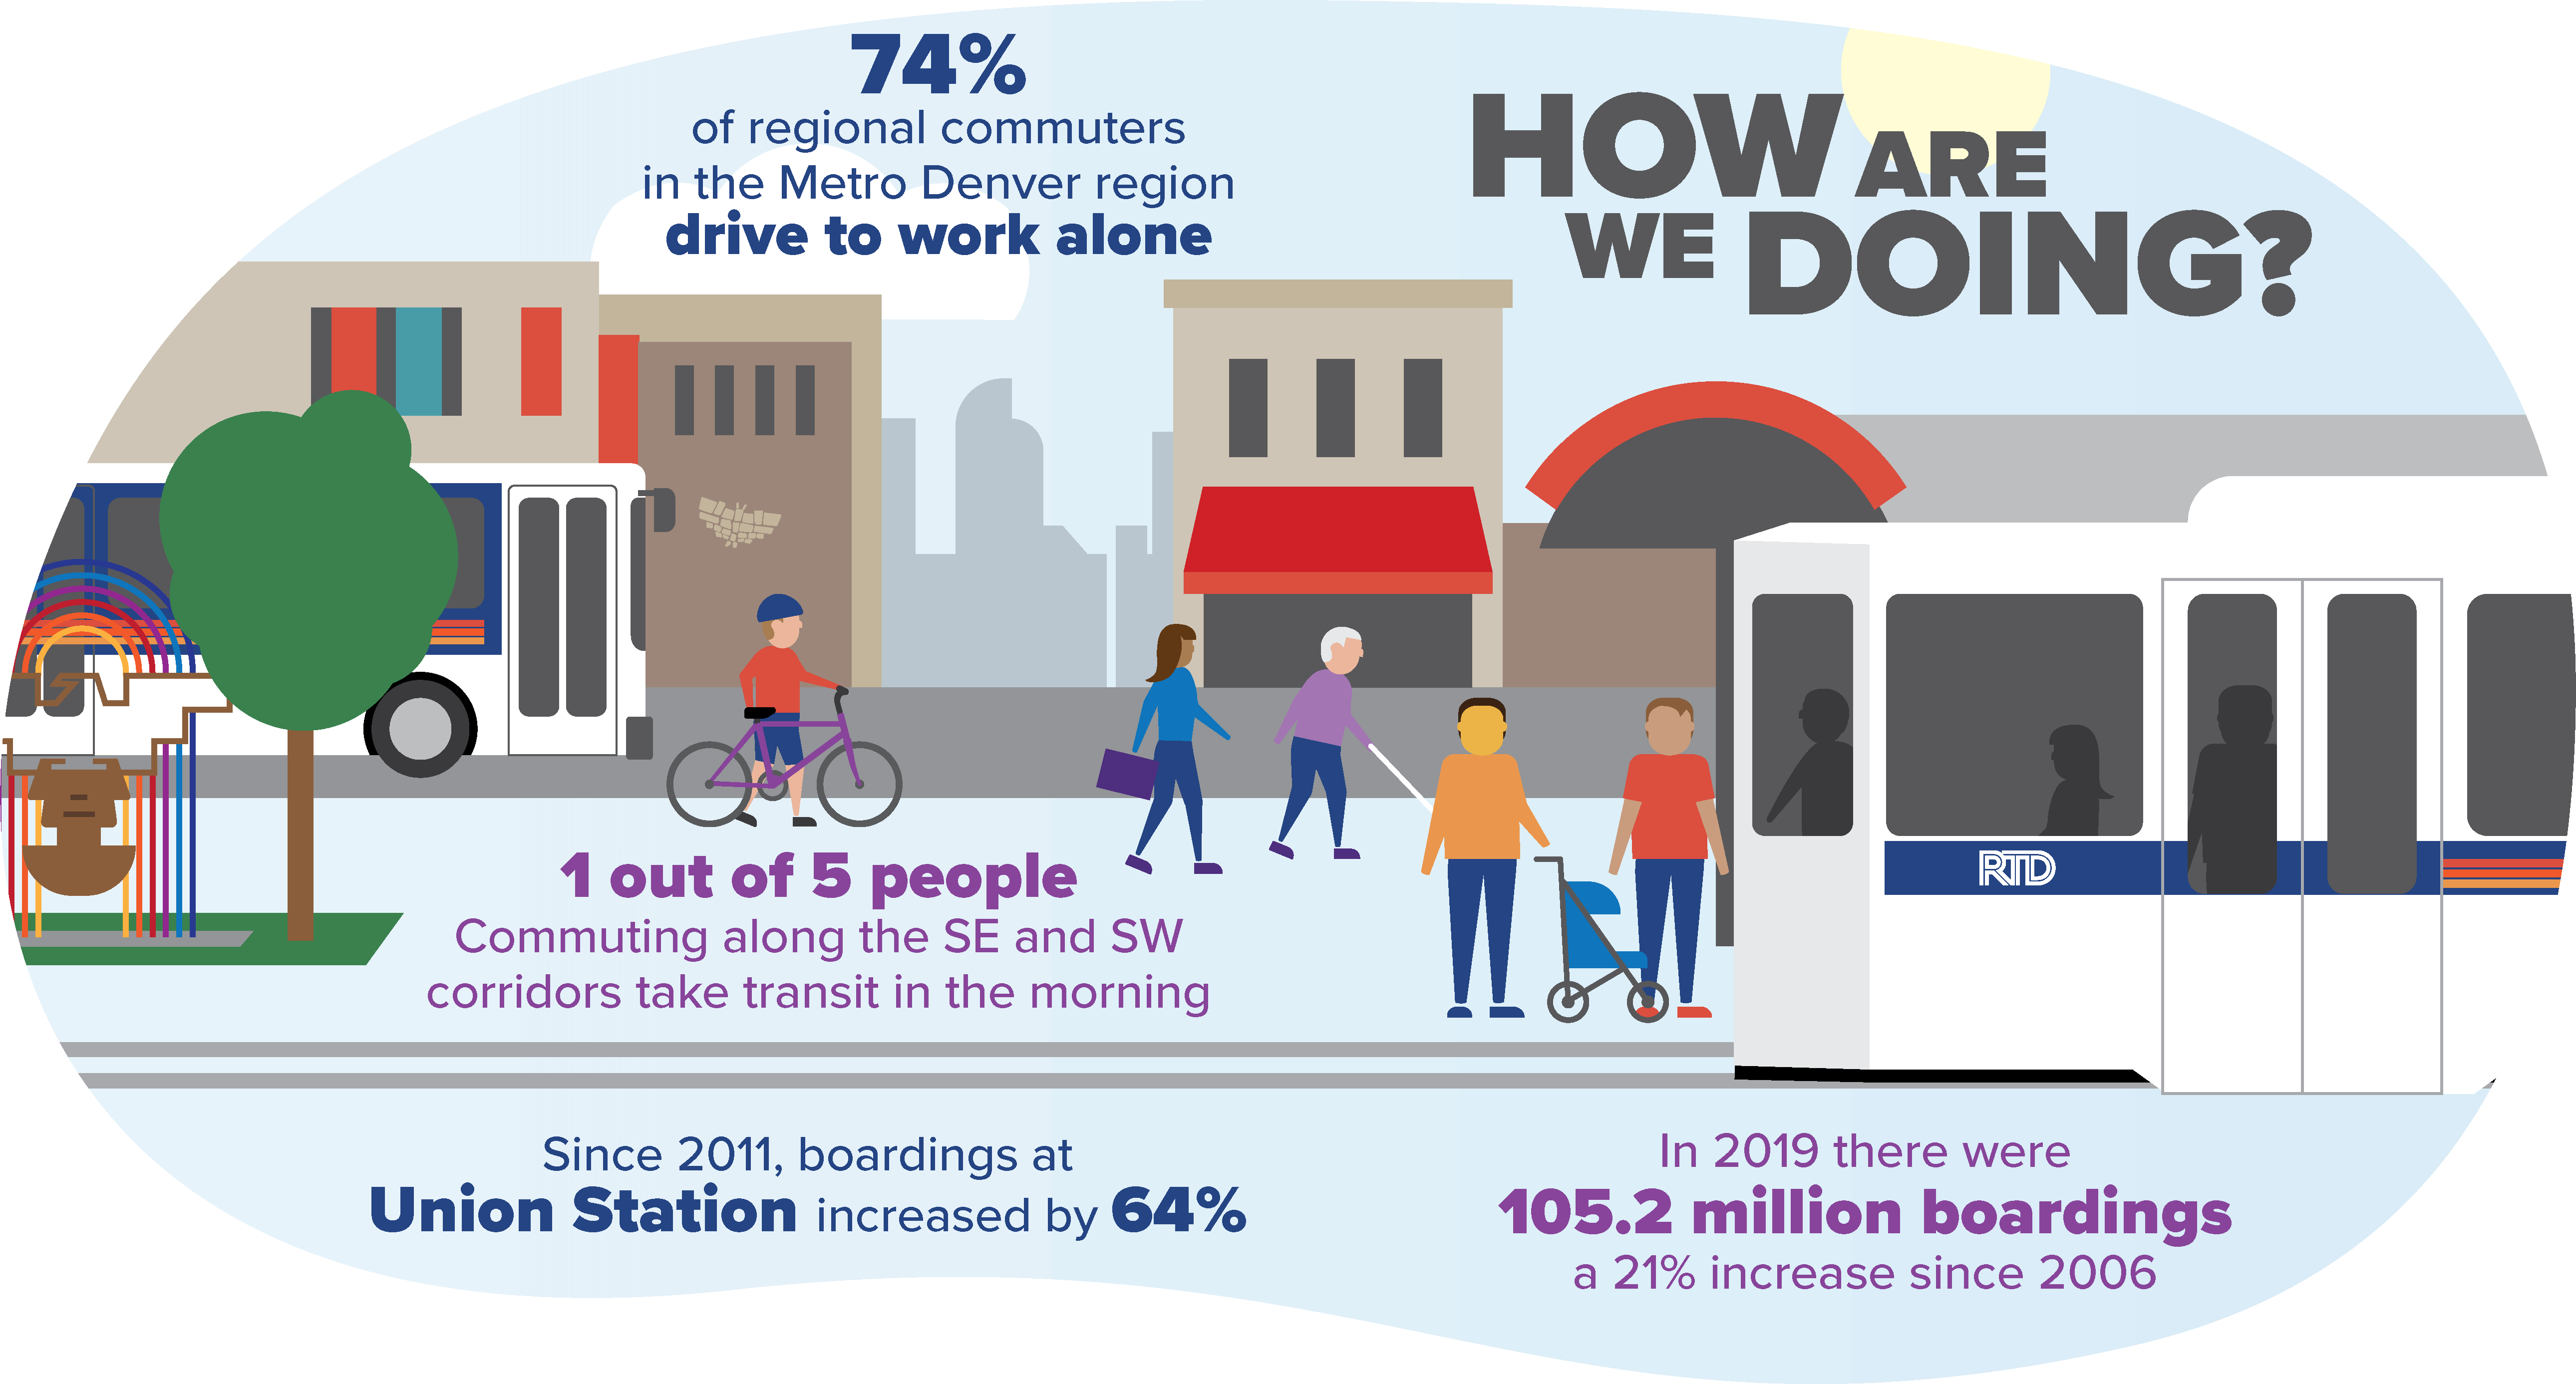 Infographic: How are we doing? 74 percent of regional commuters in the Denver metro drive to work alone.  1 out of 5 people traveling along the southeast and southwest corridors take transit in the morning. There we over 105 million boardings in 2019, a 21% increase since 2006. Since 2011, boardings at Union Station increased by 64%.